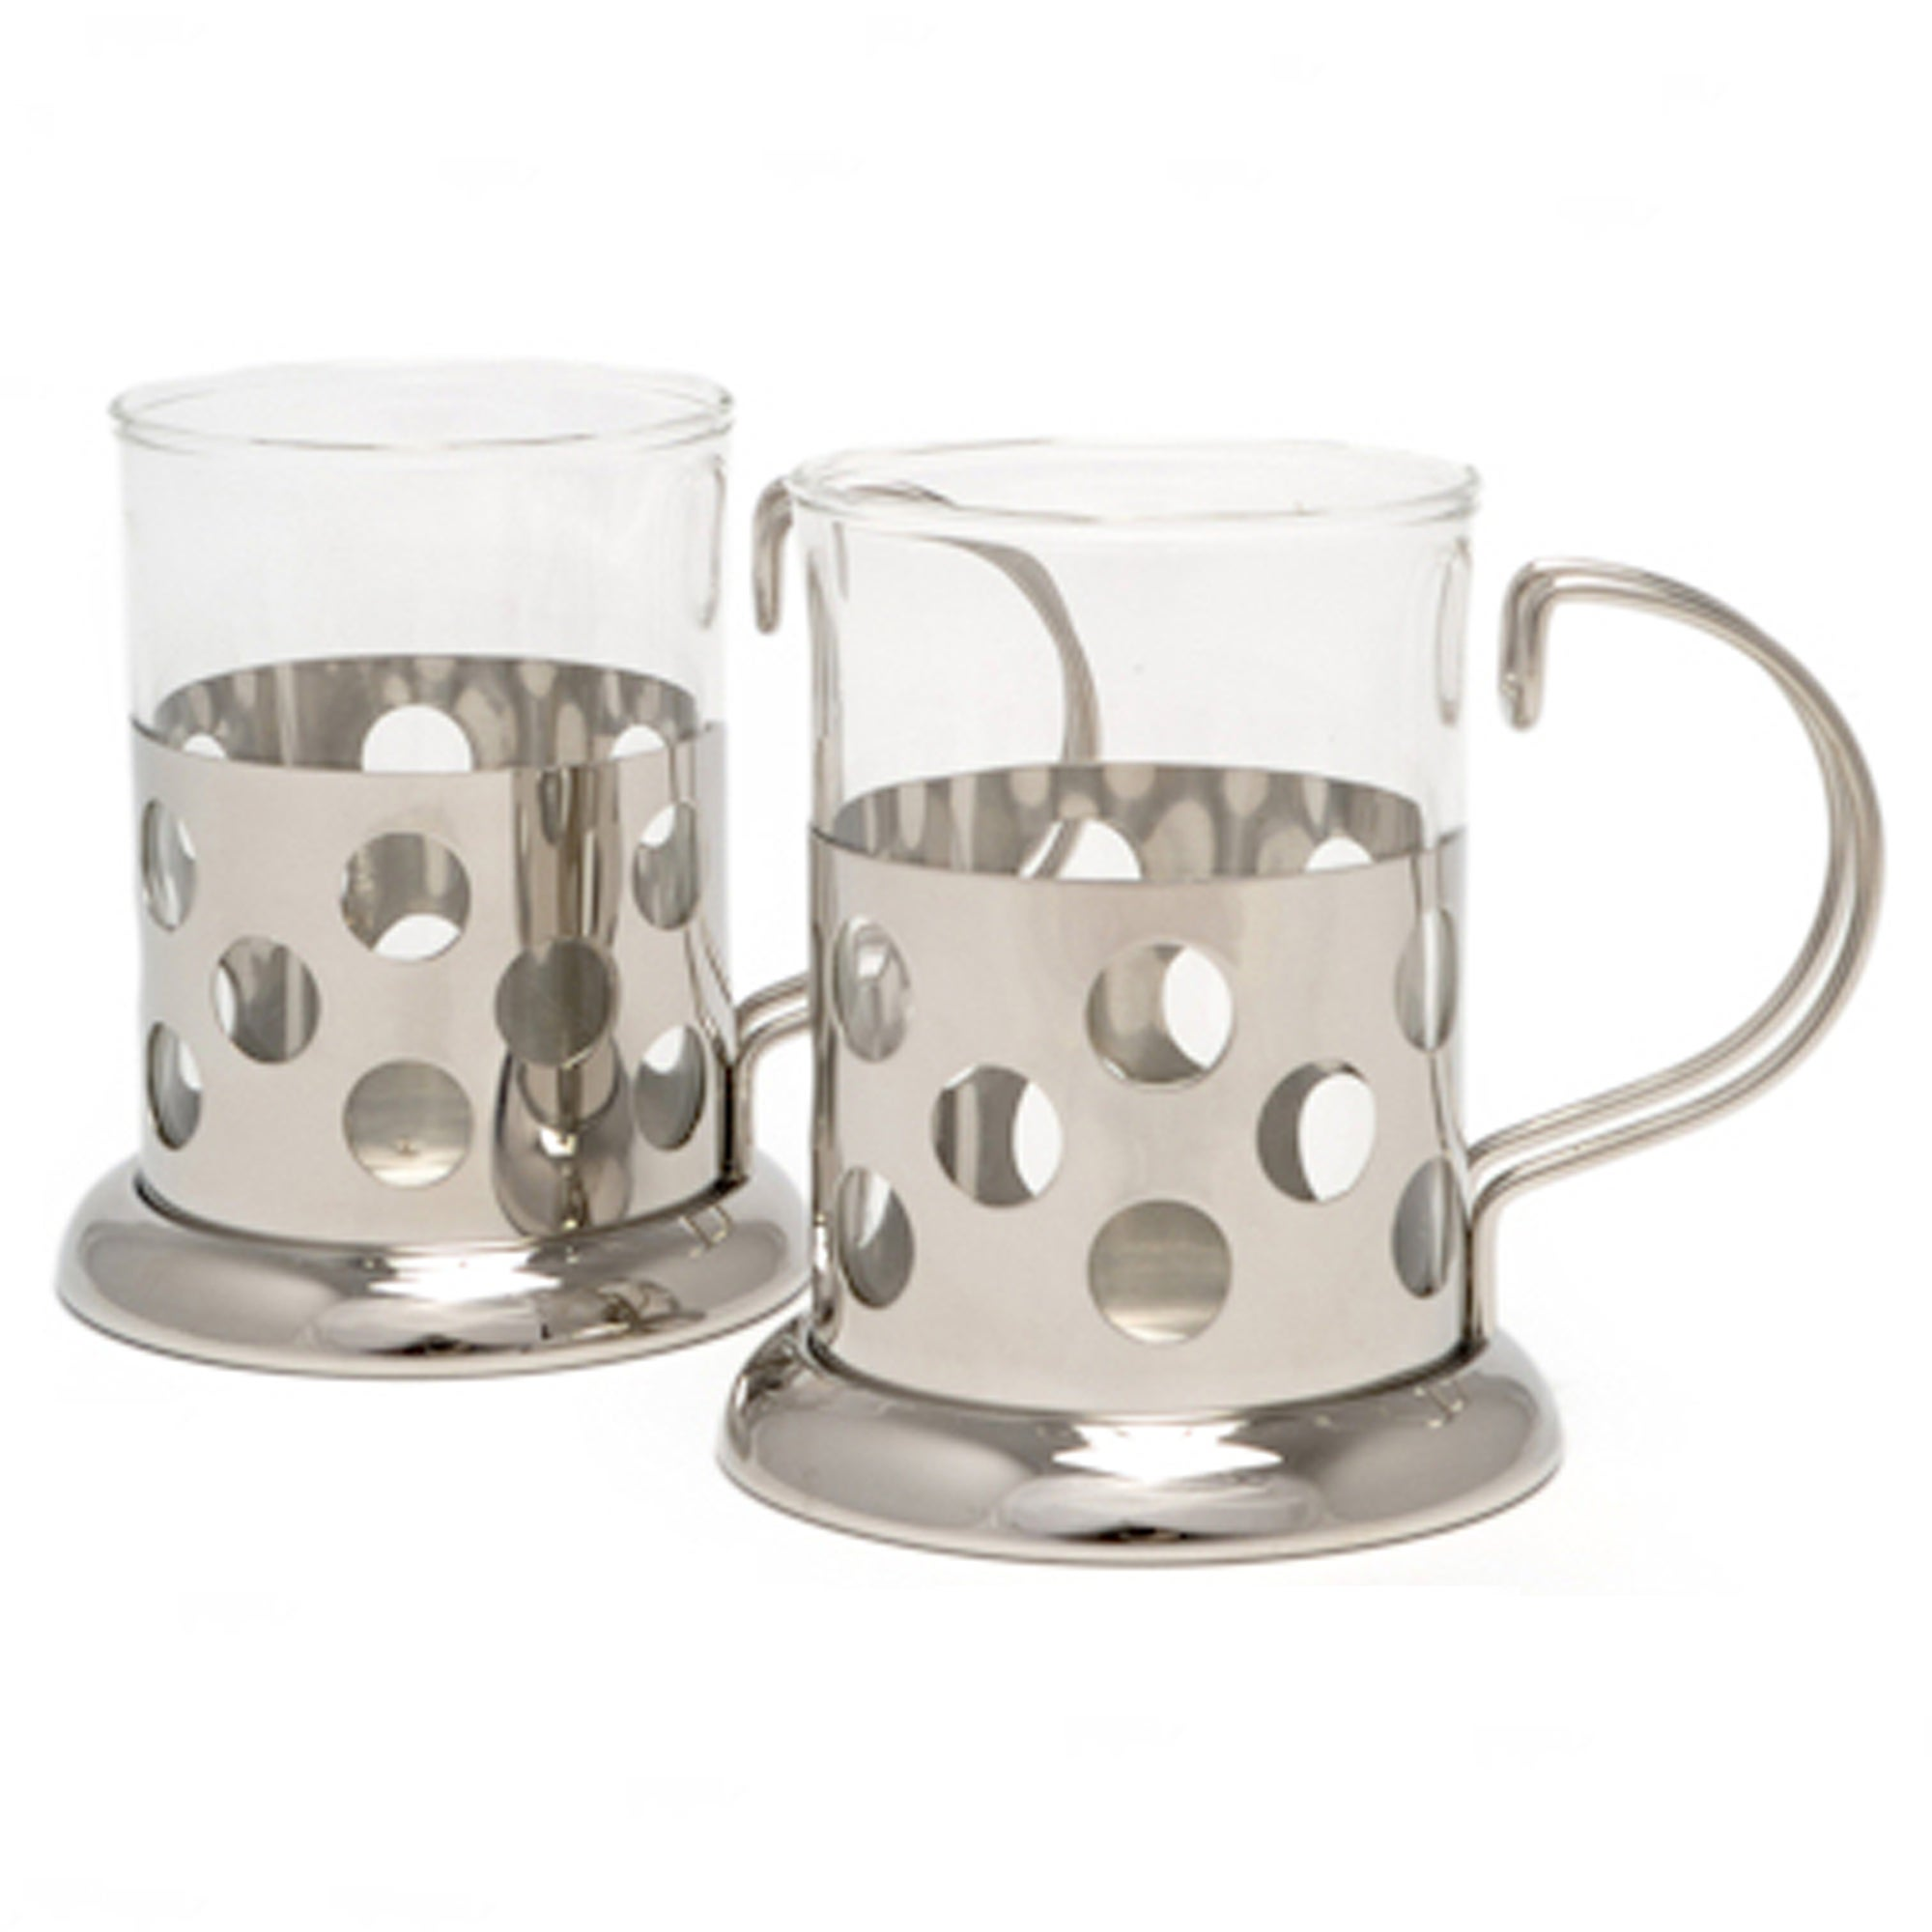 Santos Set of 2 Silver Cups